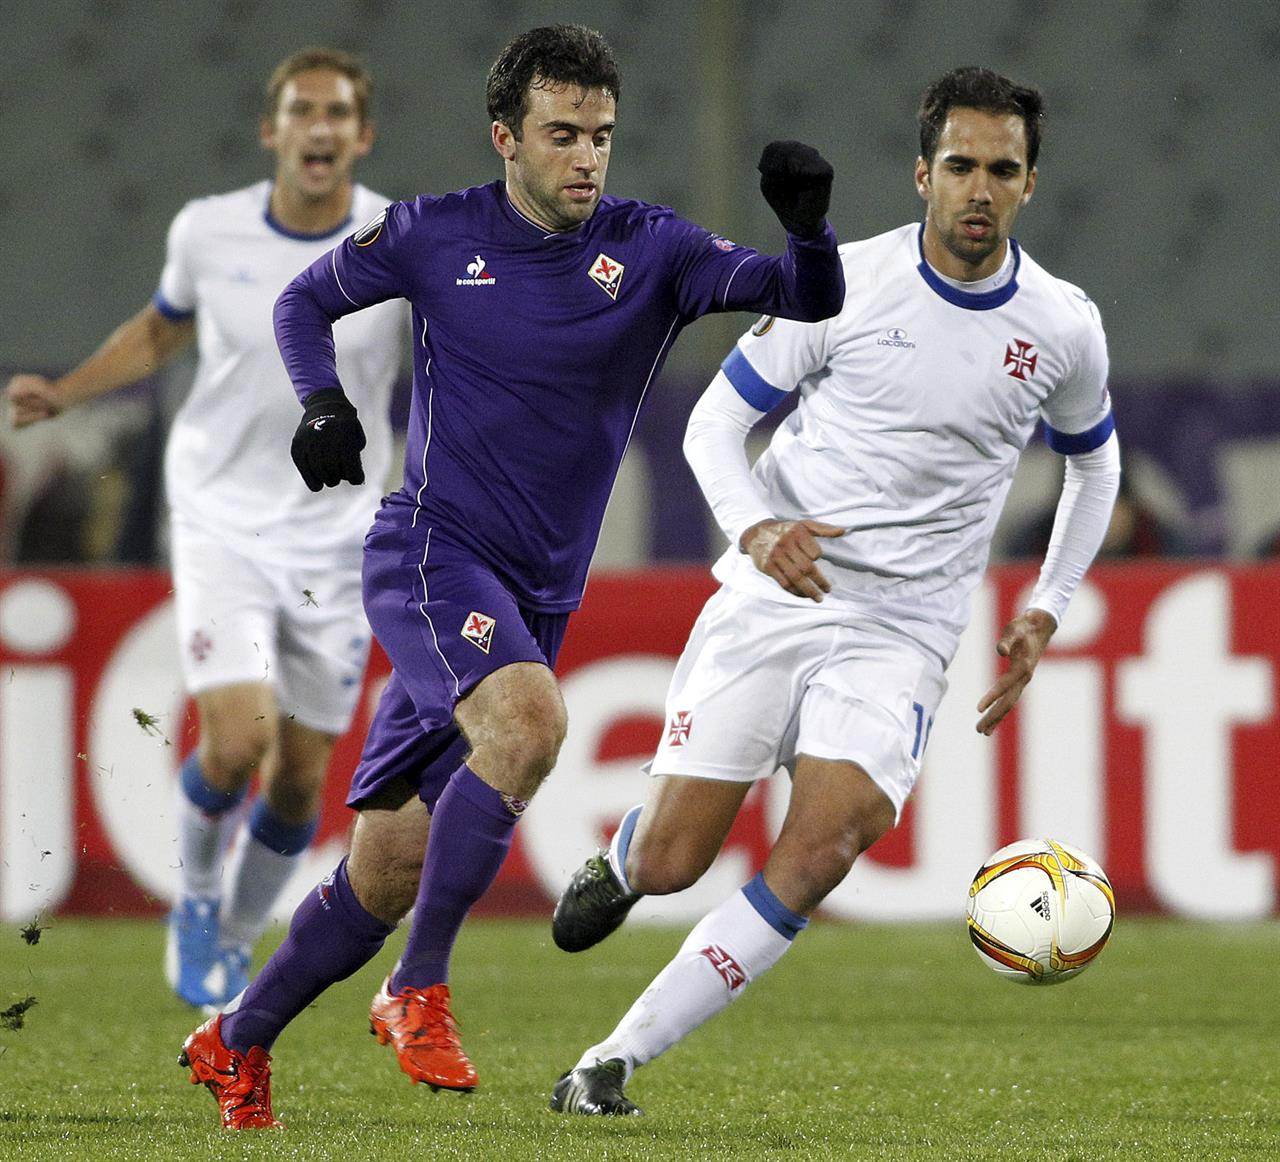 Giuseppe Rossi looks to return from latest injury with Genoa